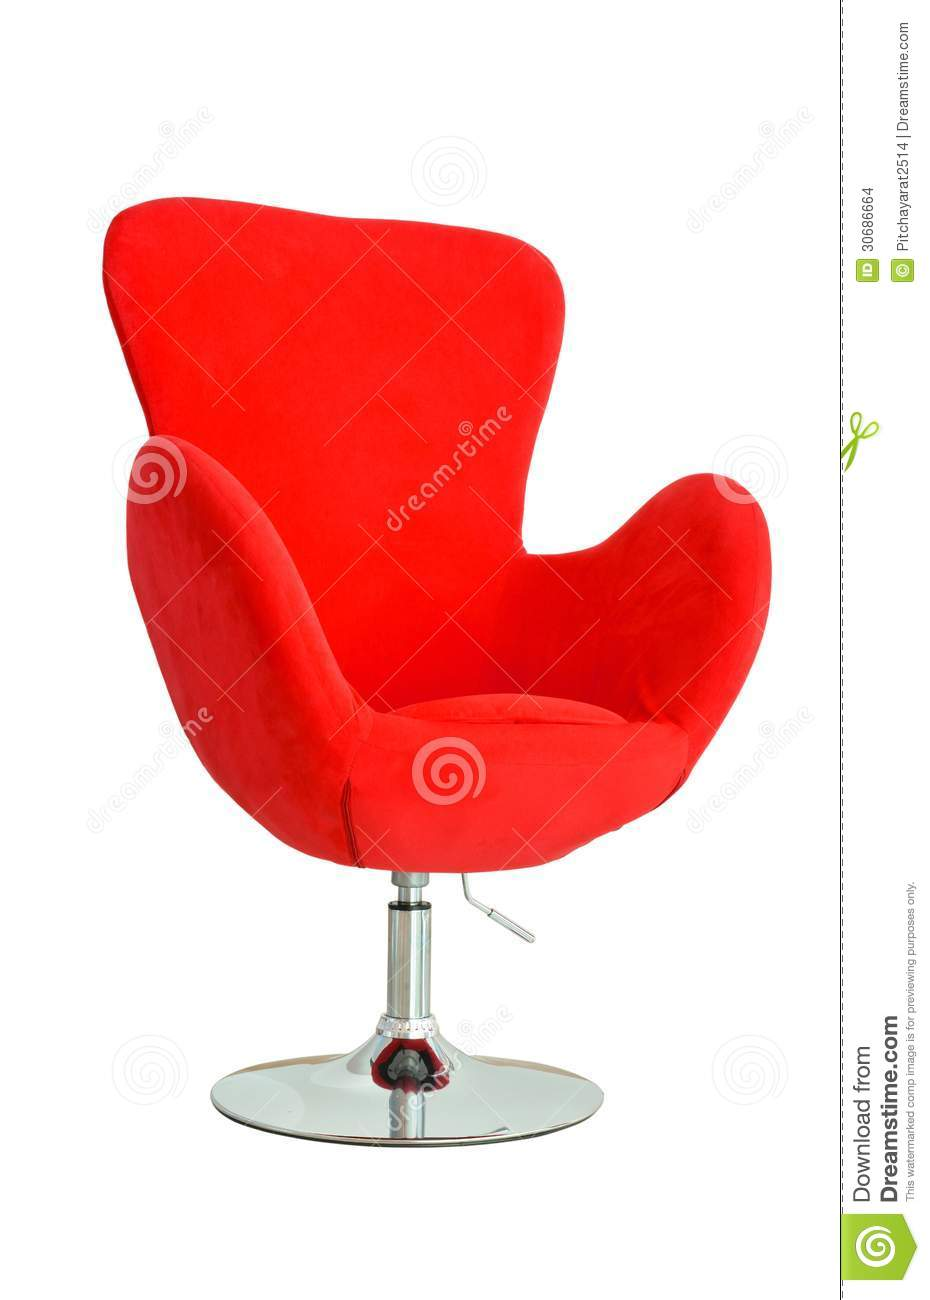 modern red chair stock images  image  - modern red chair